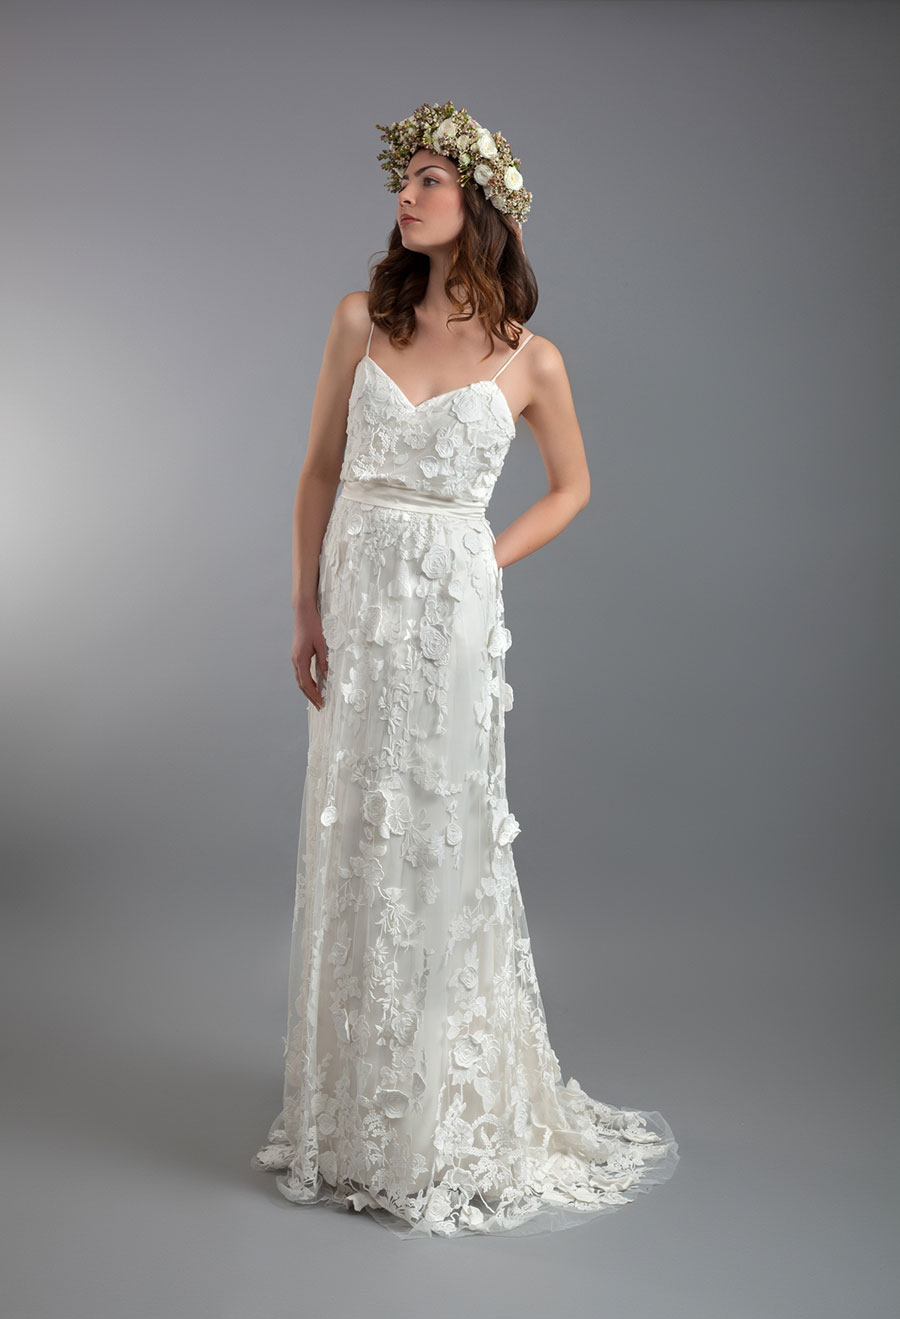 Shanna Melville Launches 2017 Bridal Collection- Wildflowers! (and it's so pretty)0027